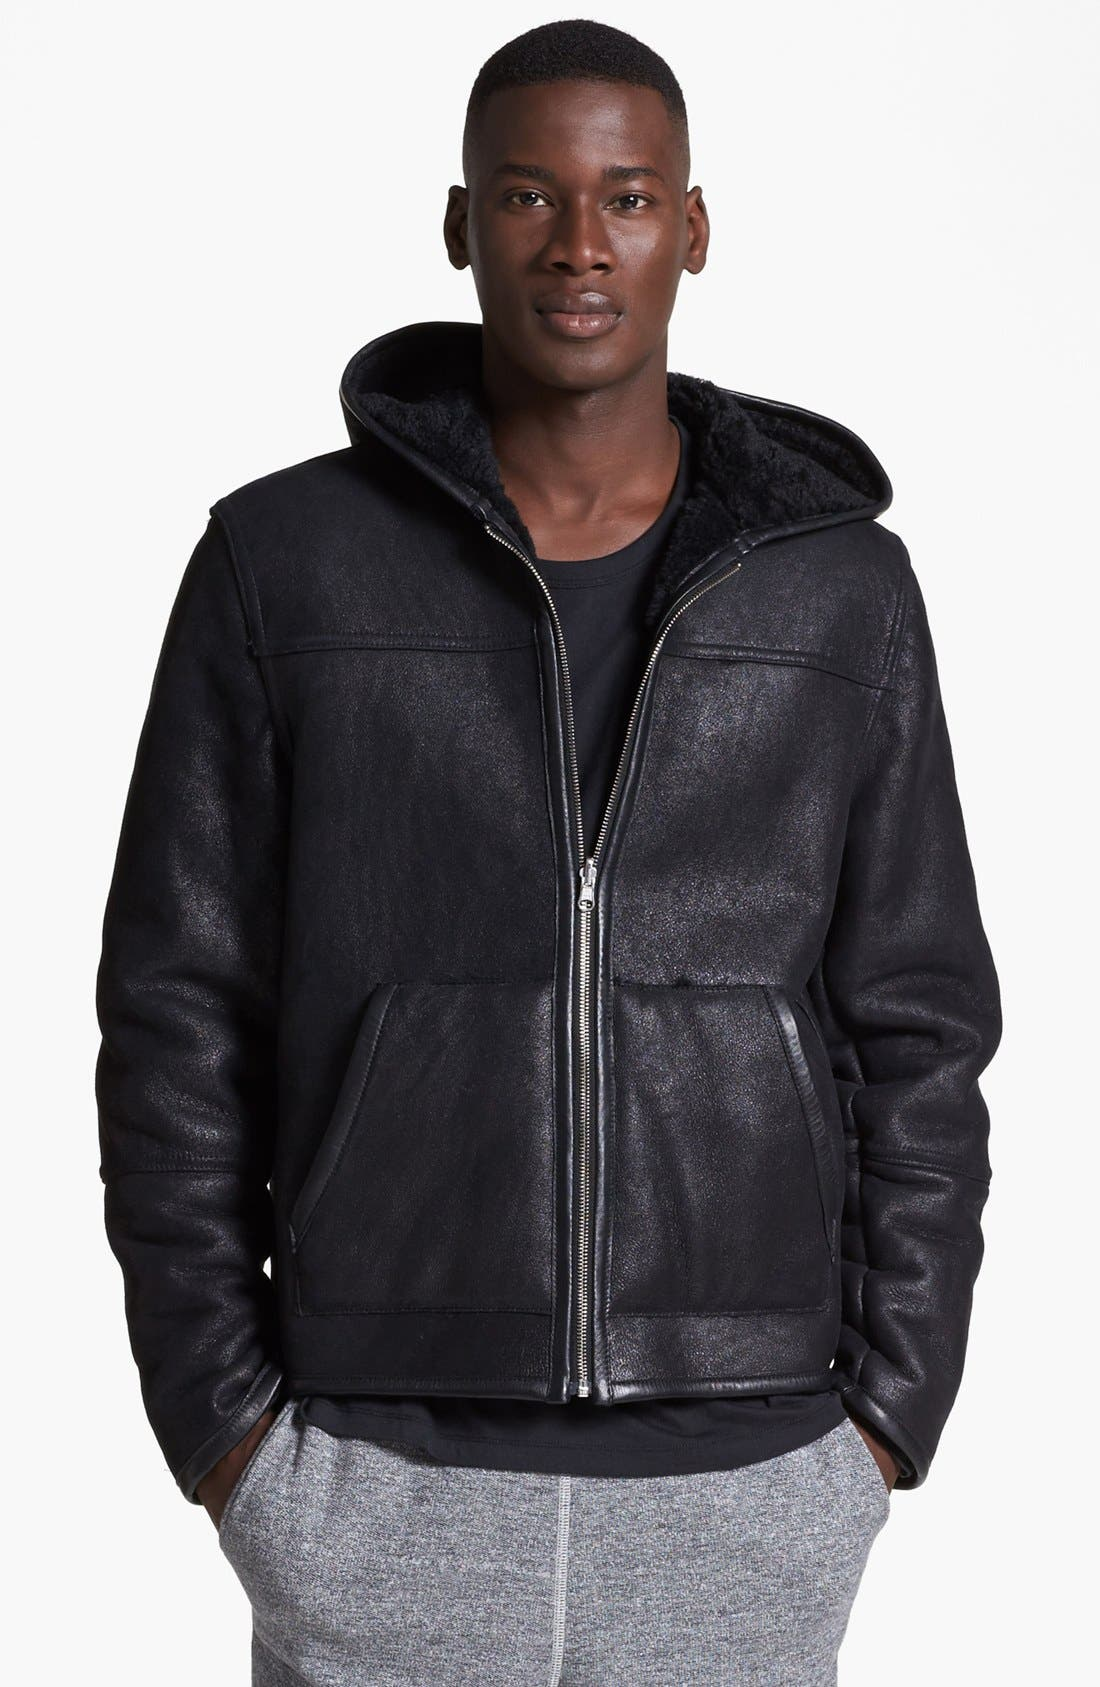 Alternate Image 1 Selected - T by Alexander Wang Reversible Genuine Shearling Leather Jacket